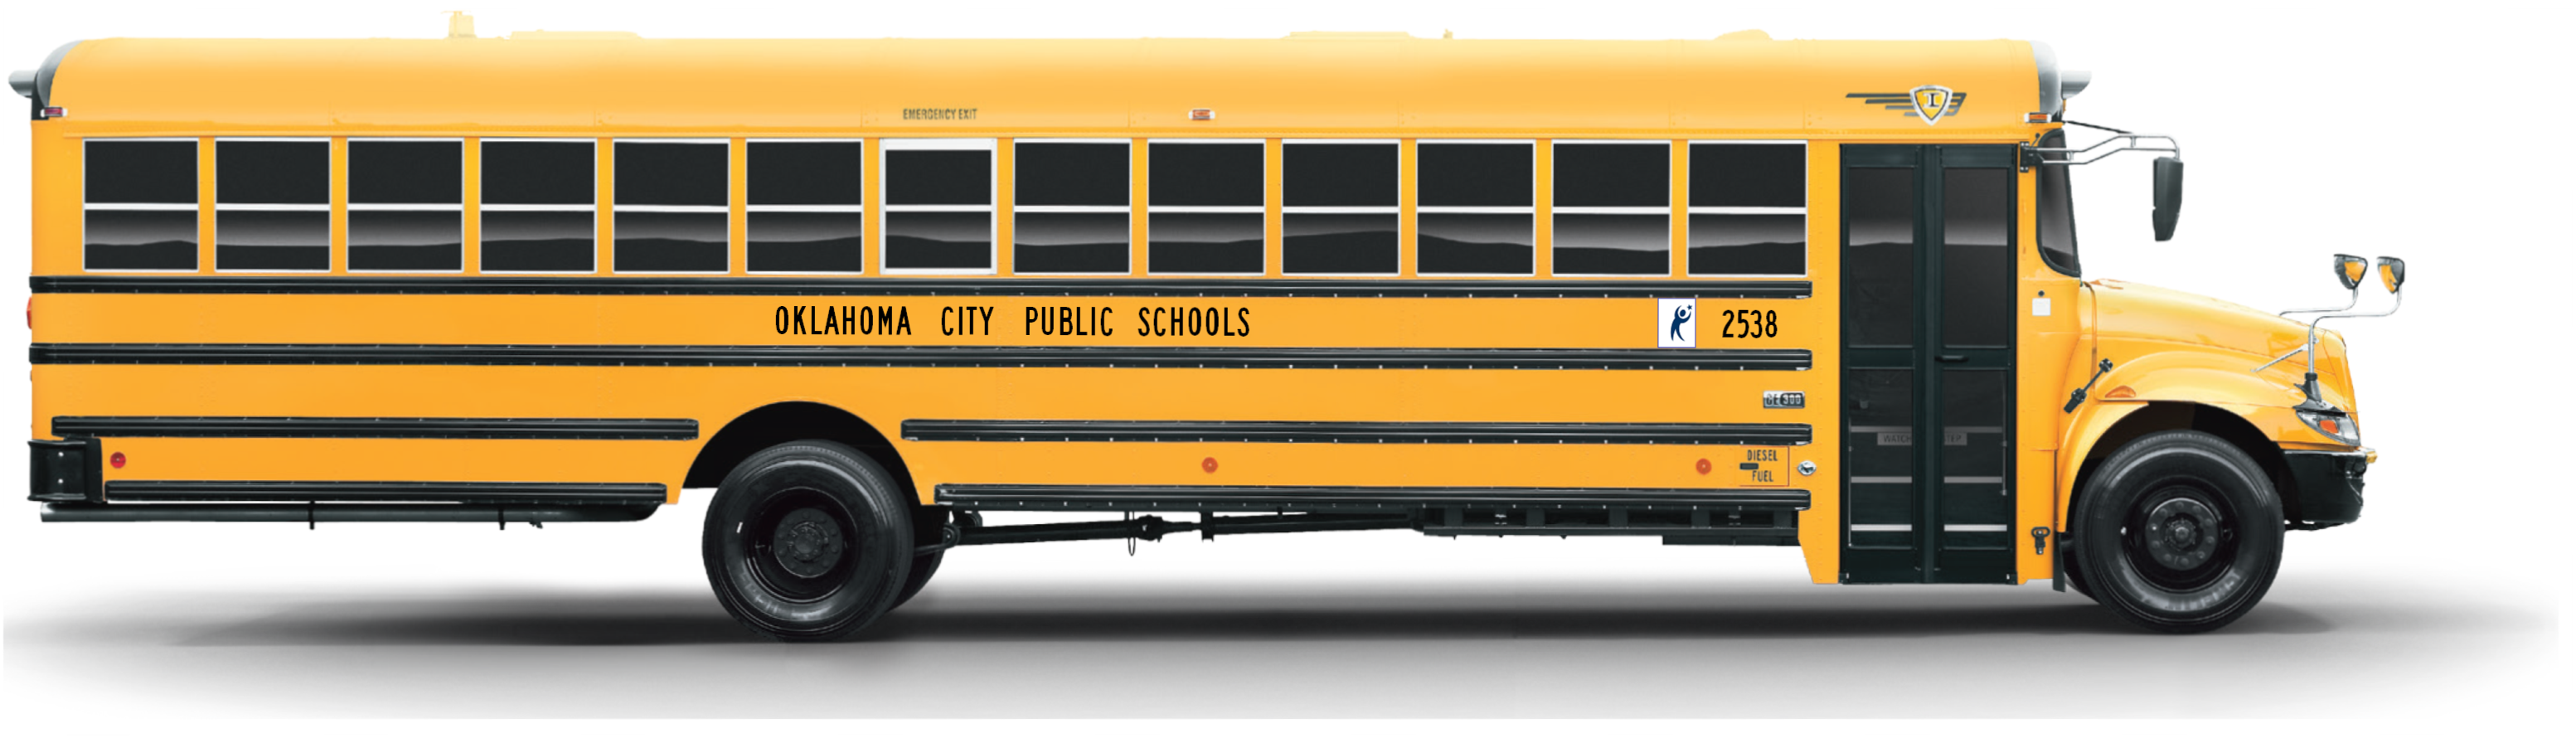 City Bus Side View PNG - 54575